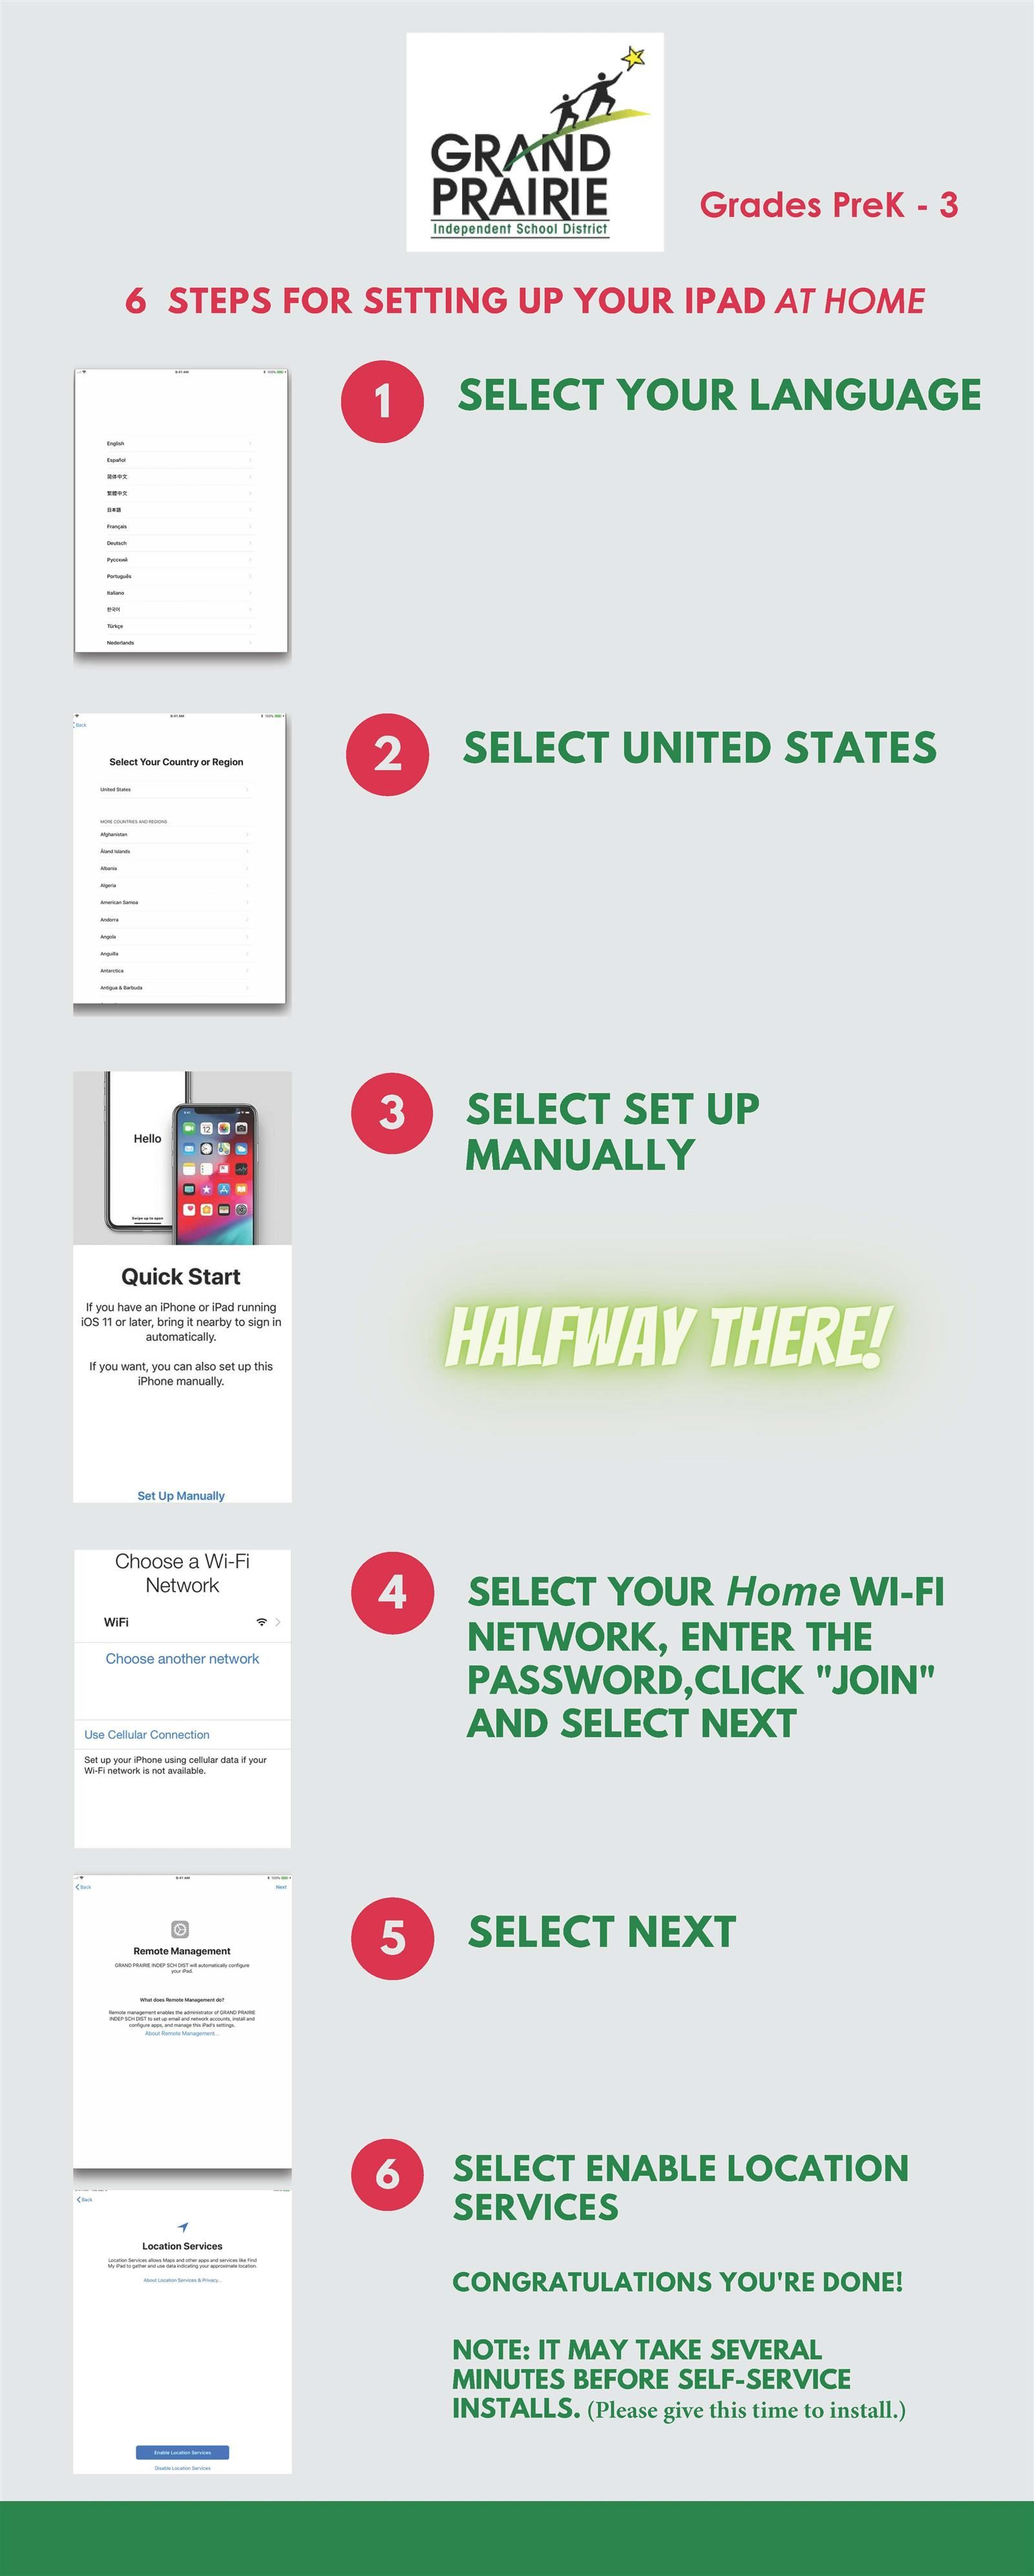 6 Steps for setting up your iPad